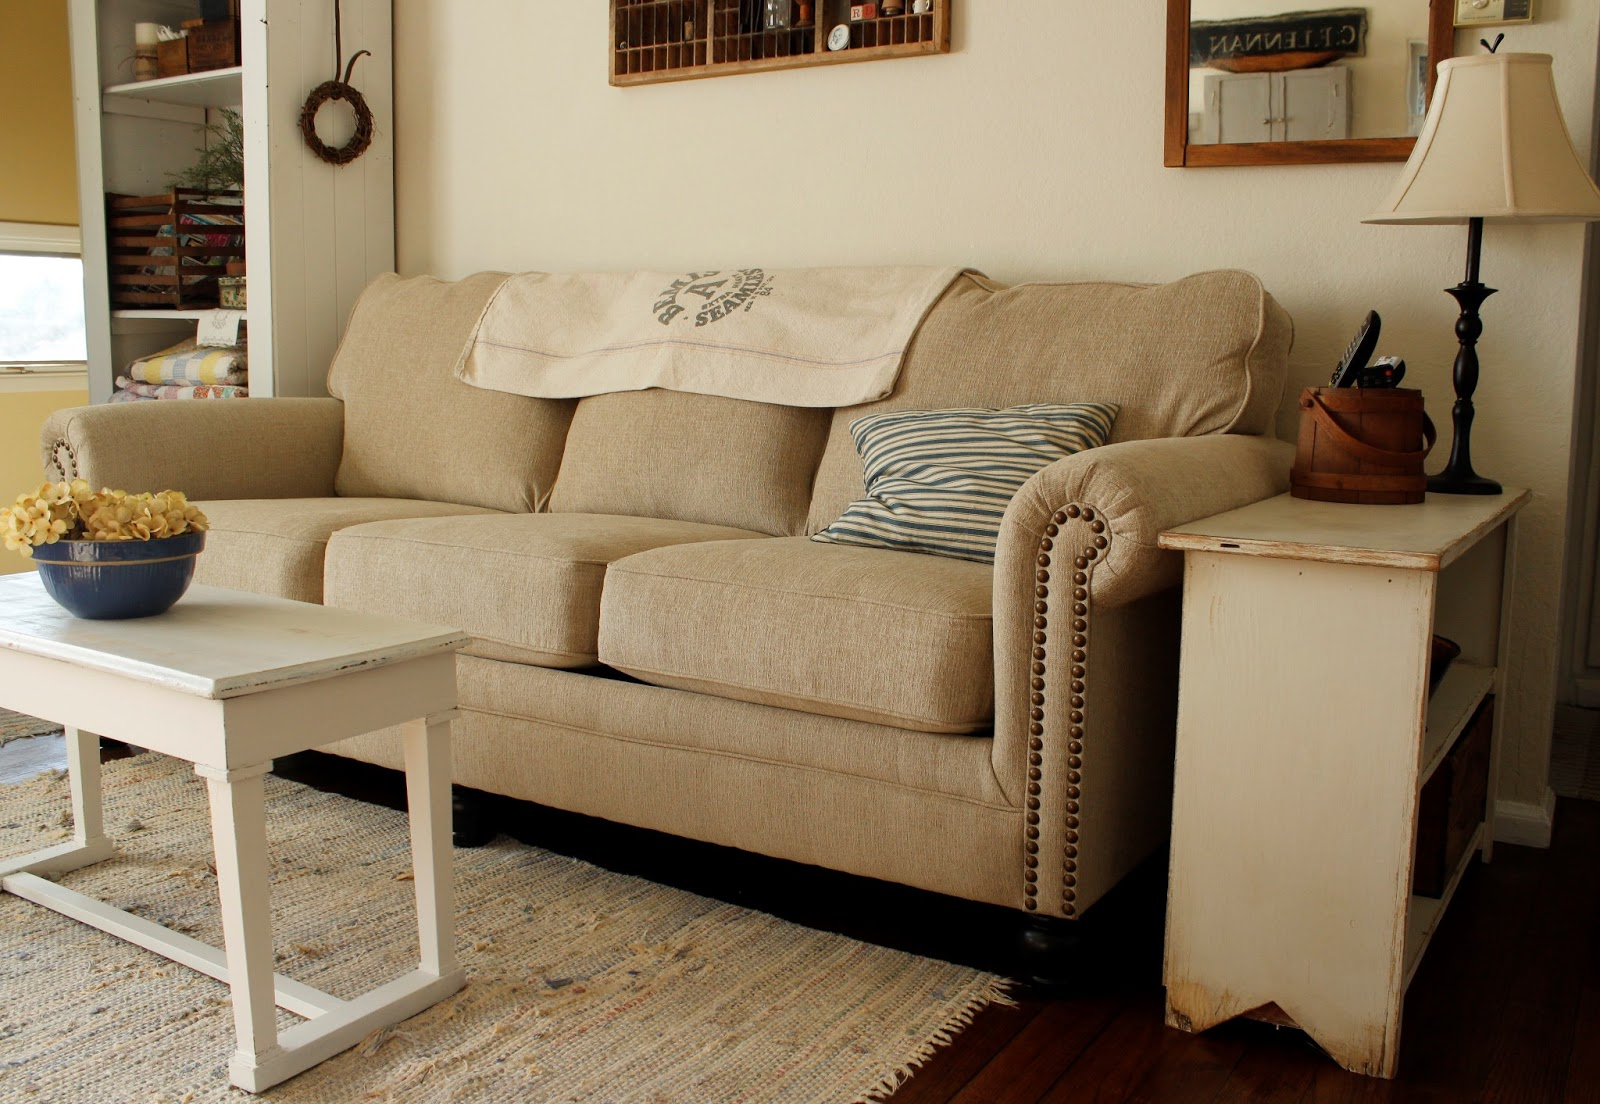 I Searched For An Easy Care Upholstery That Looked Like Linen Since The Real Thing Is So Expensive Found One Just Love It